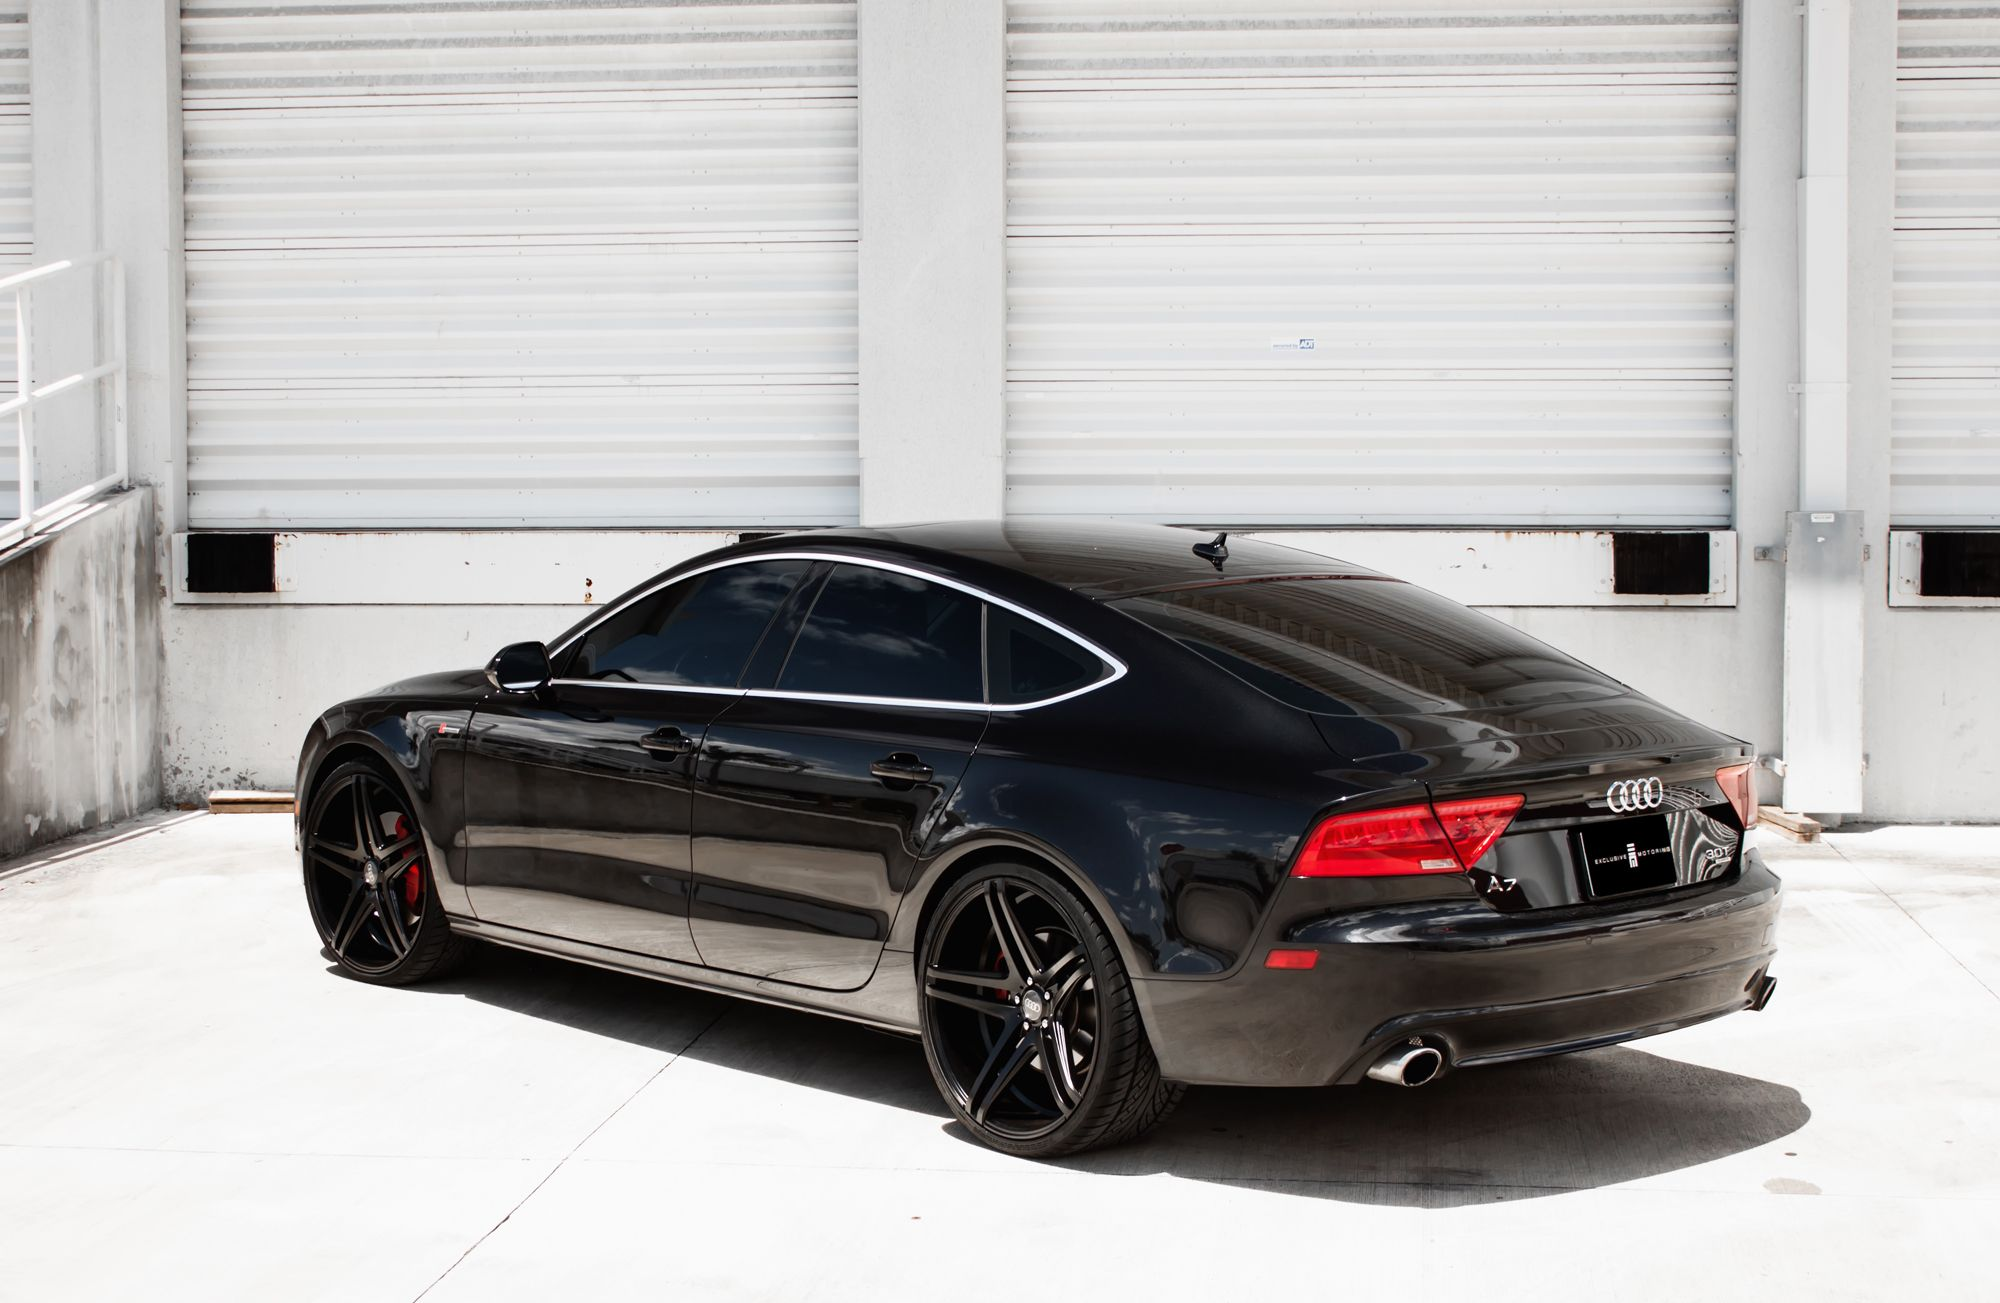 audi a7 2014 custom. customized audi a7 exclusive motoring miami fl 2014 custom pinterest